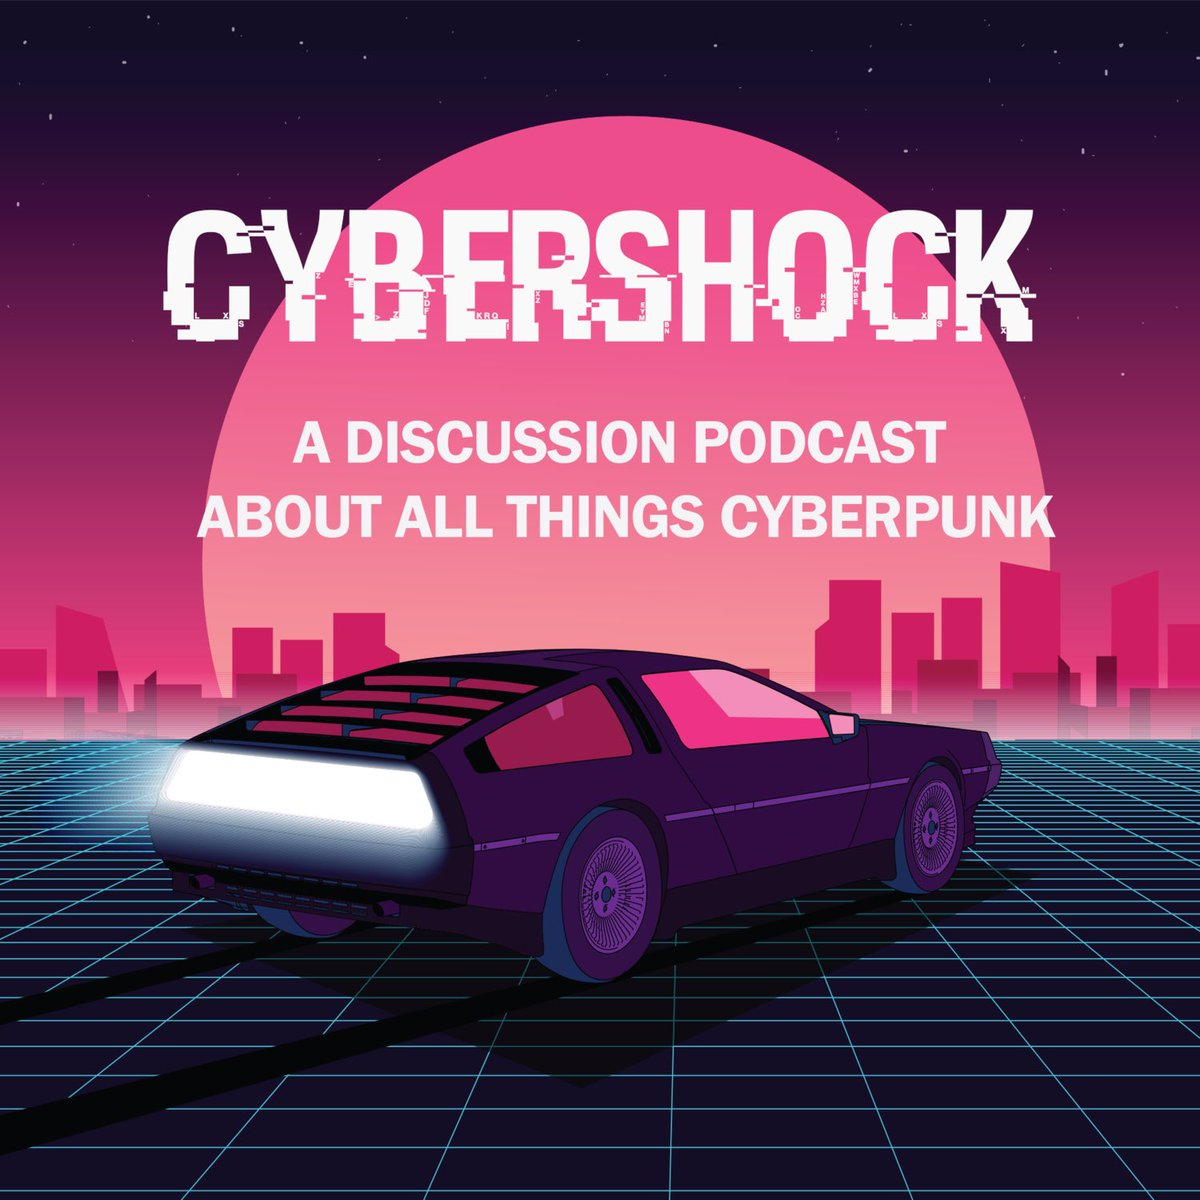 In an hour and change we are going to be doing another episode of Cyber shock. @banana_chan_vid @Kiranansi and I on @peregrinekiwi 's Twitch Channel - talking about The Fringes Of Cyberpunk~ <br>http://pic.twitter.com/Or1Vd3Khak